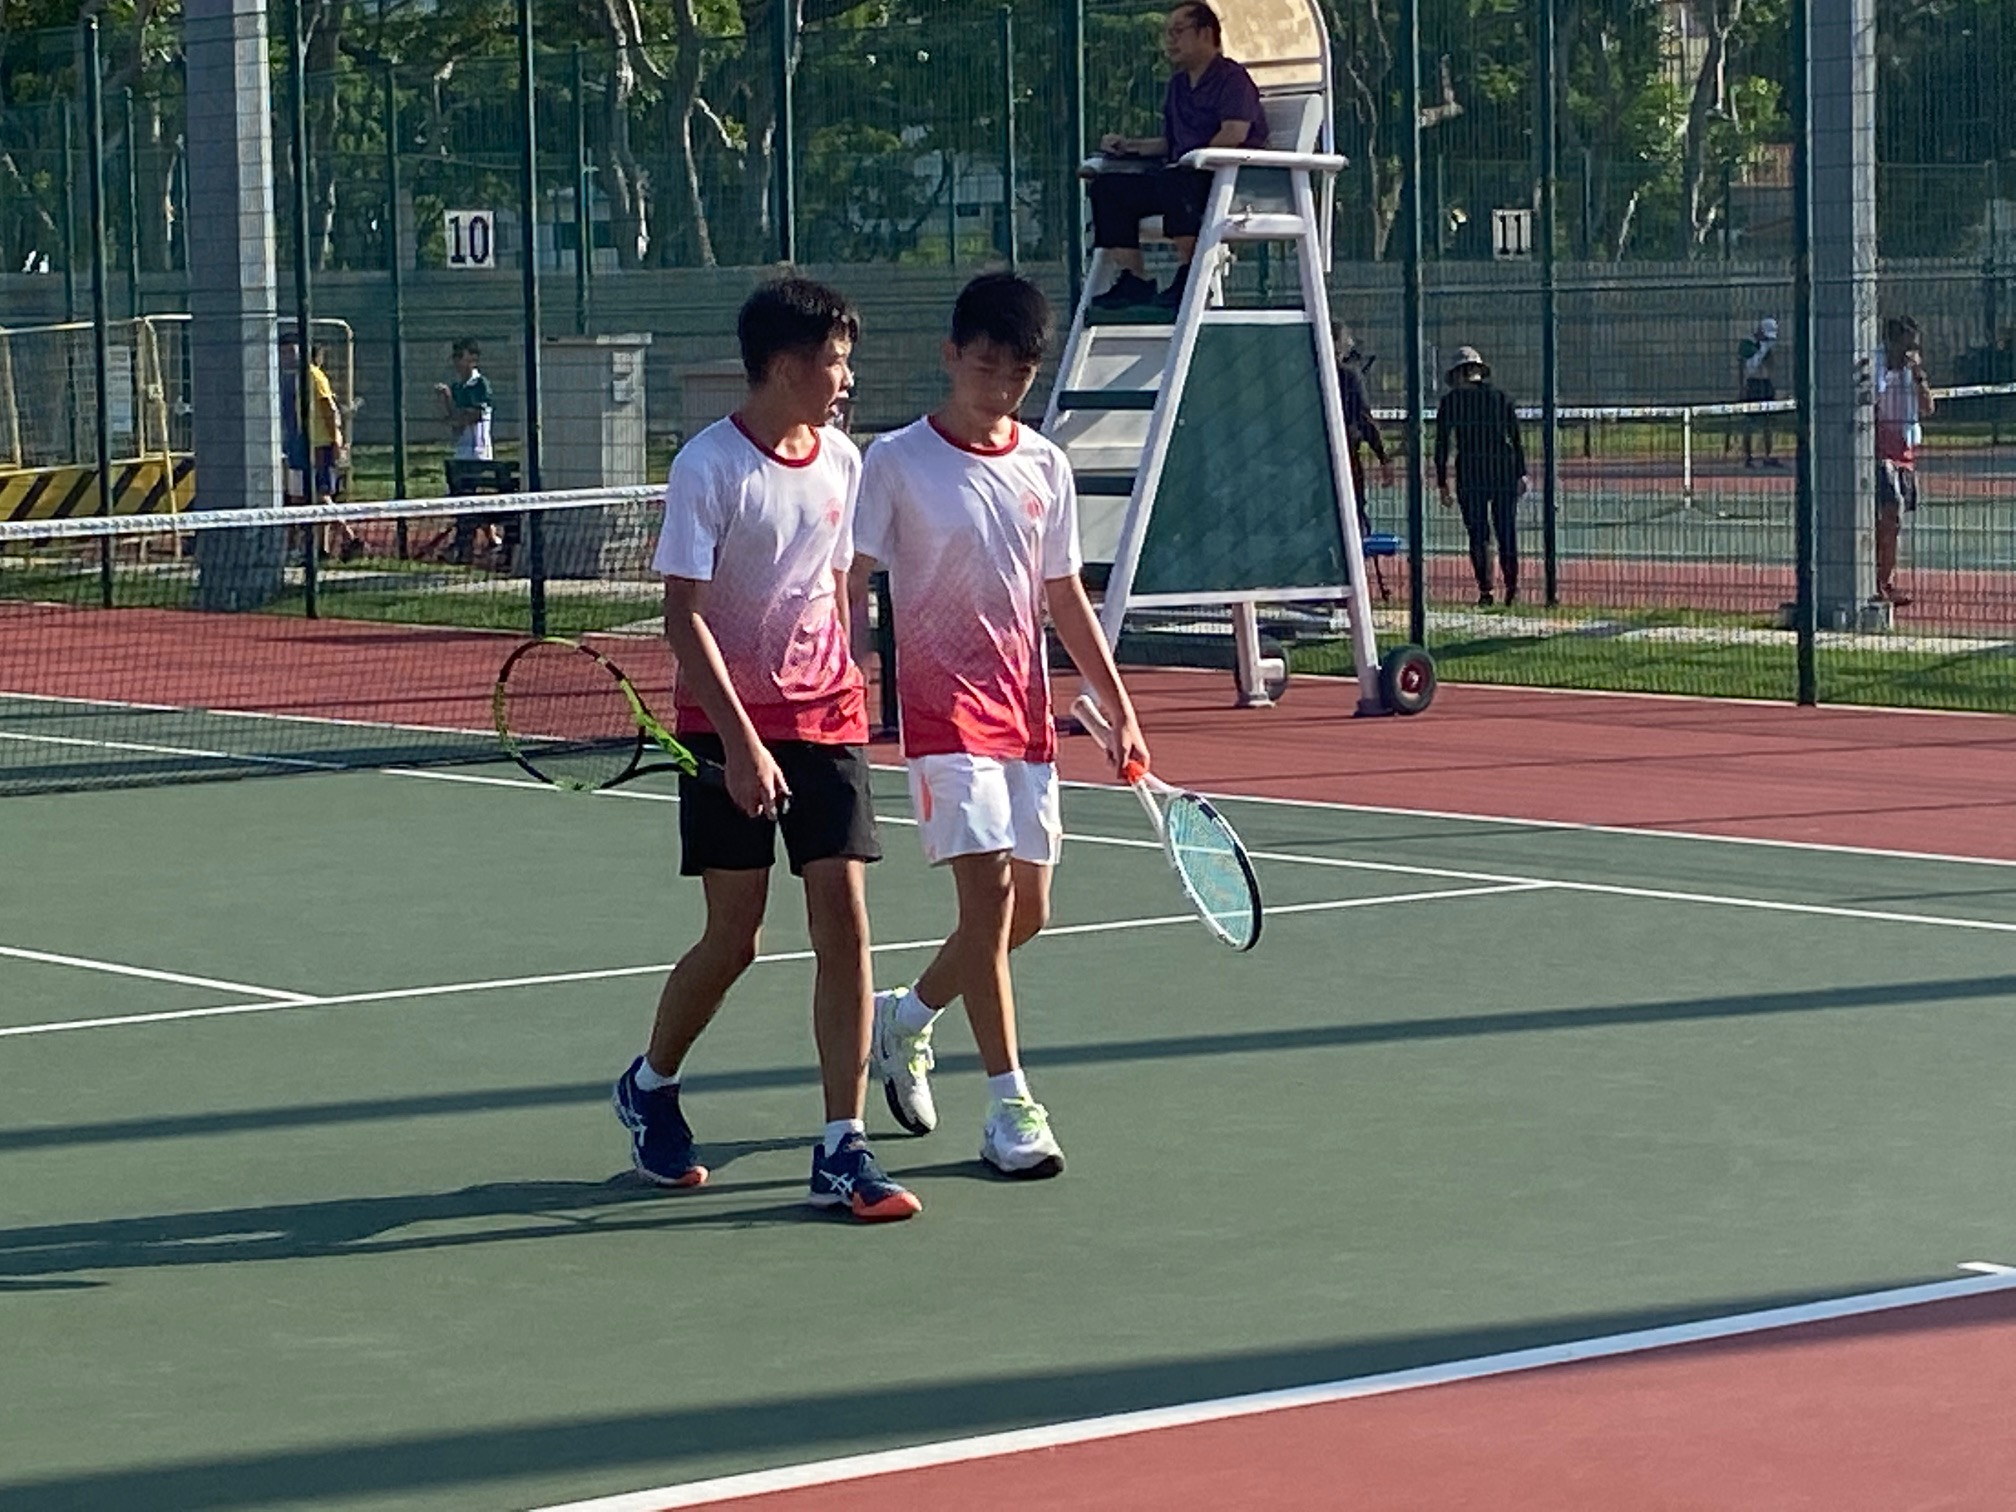 NSG B Division Boys' Tennis: Victoria stuns SJI 3-2 to reach first final in over a decade